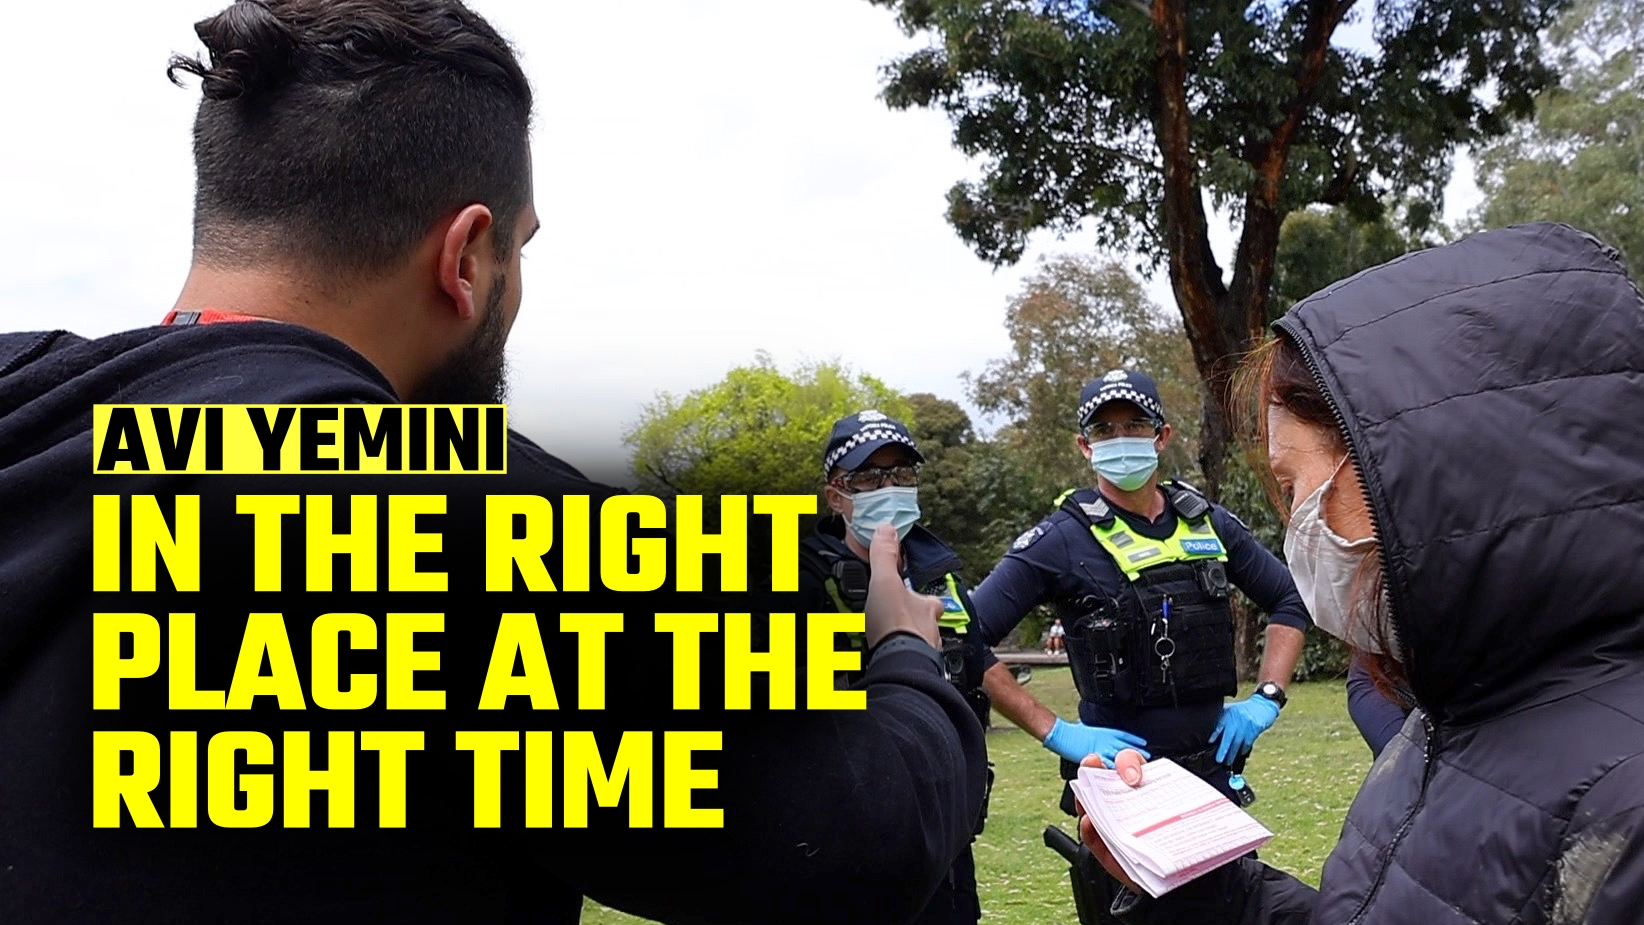 MUST WATCH: Avi Yemini steps in for woman violently arrested in Melbourne